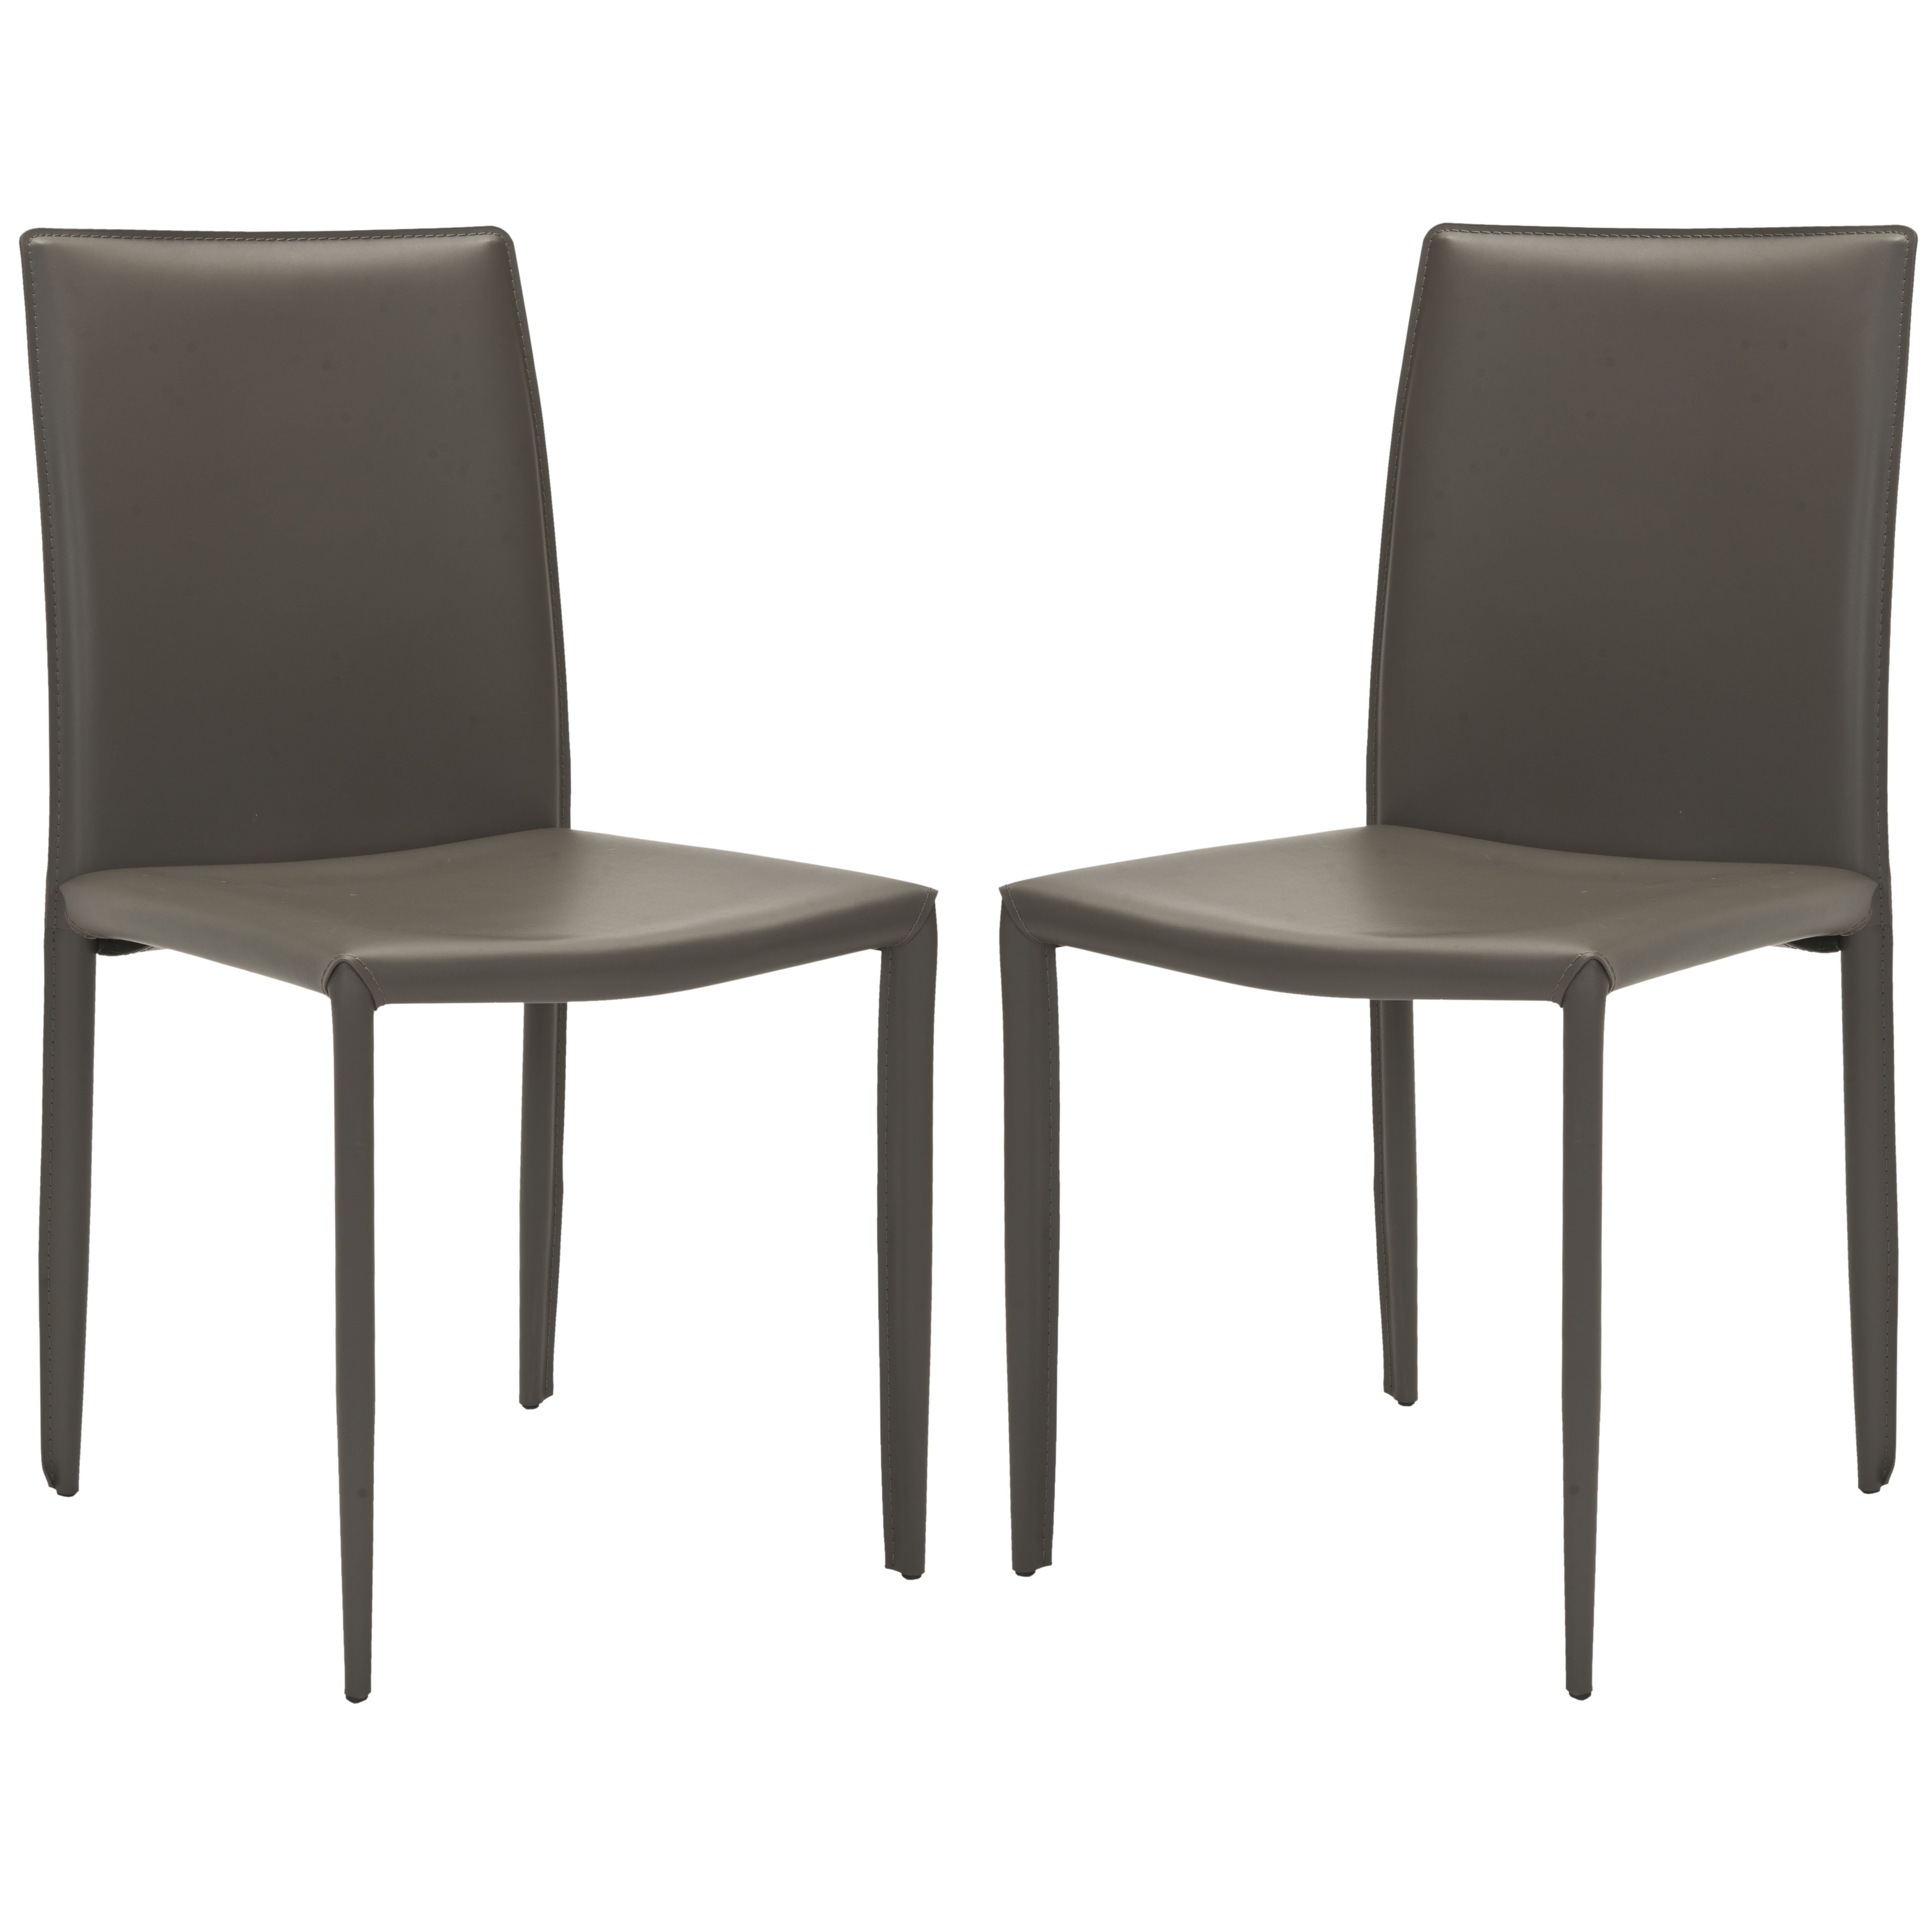 safavieh leather upholstered dining chair reviews